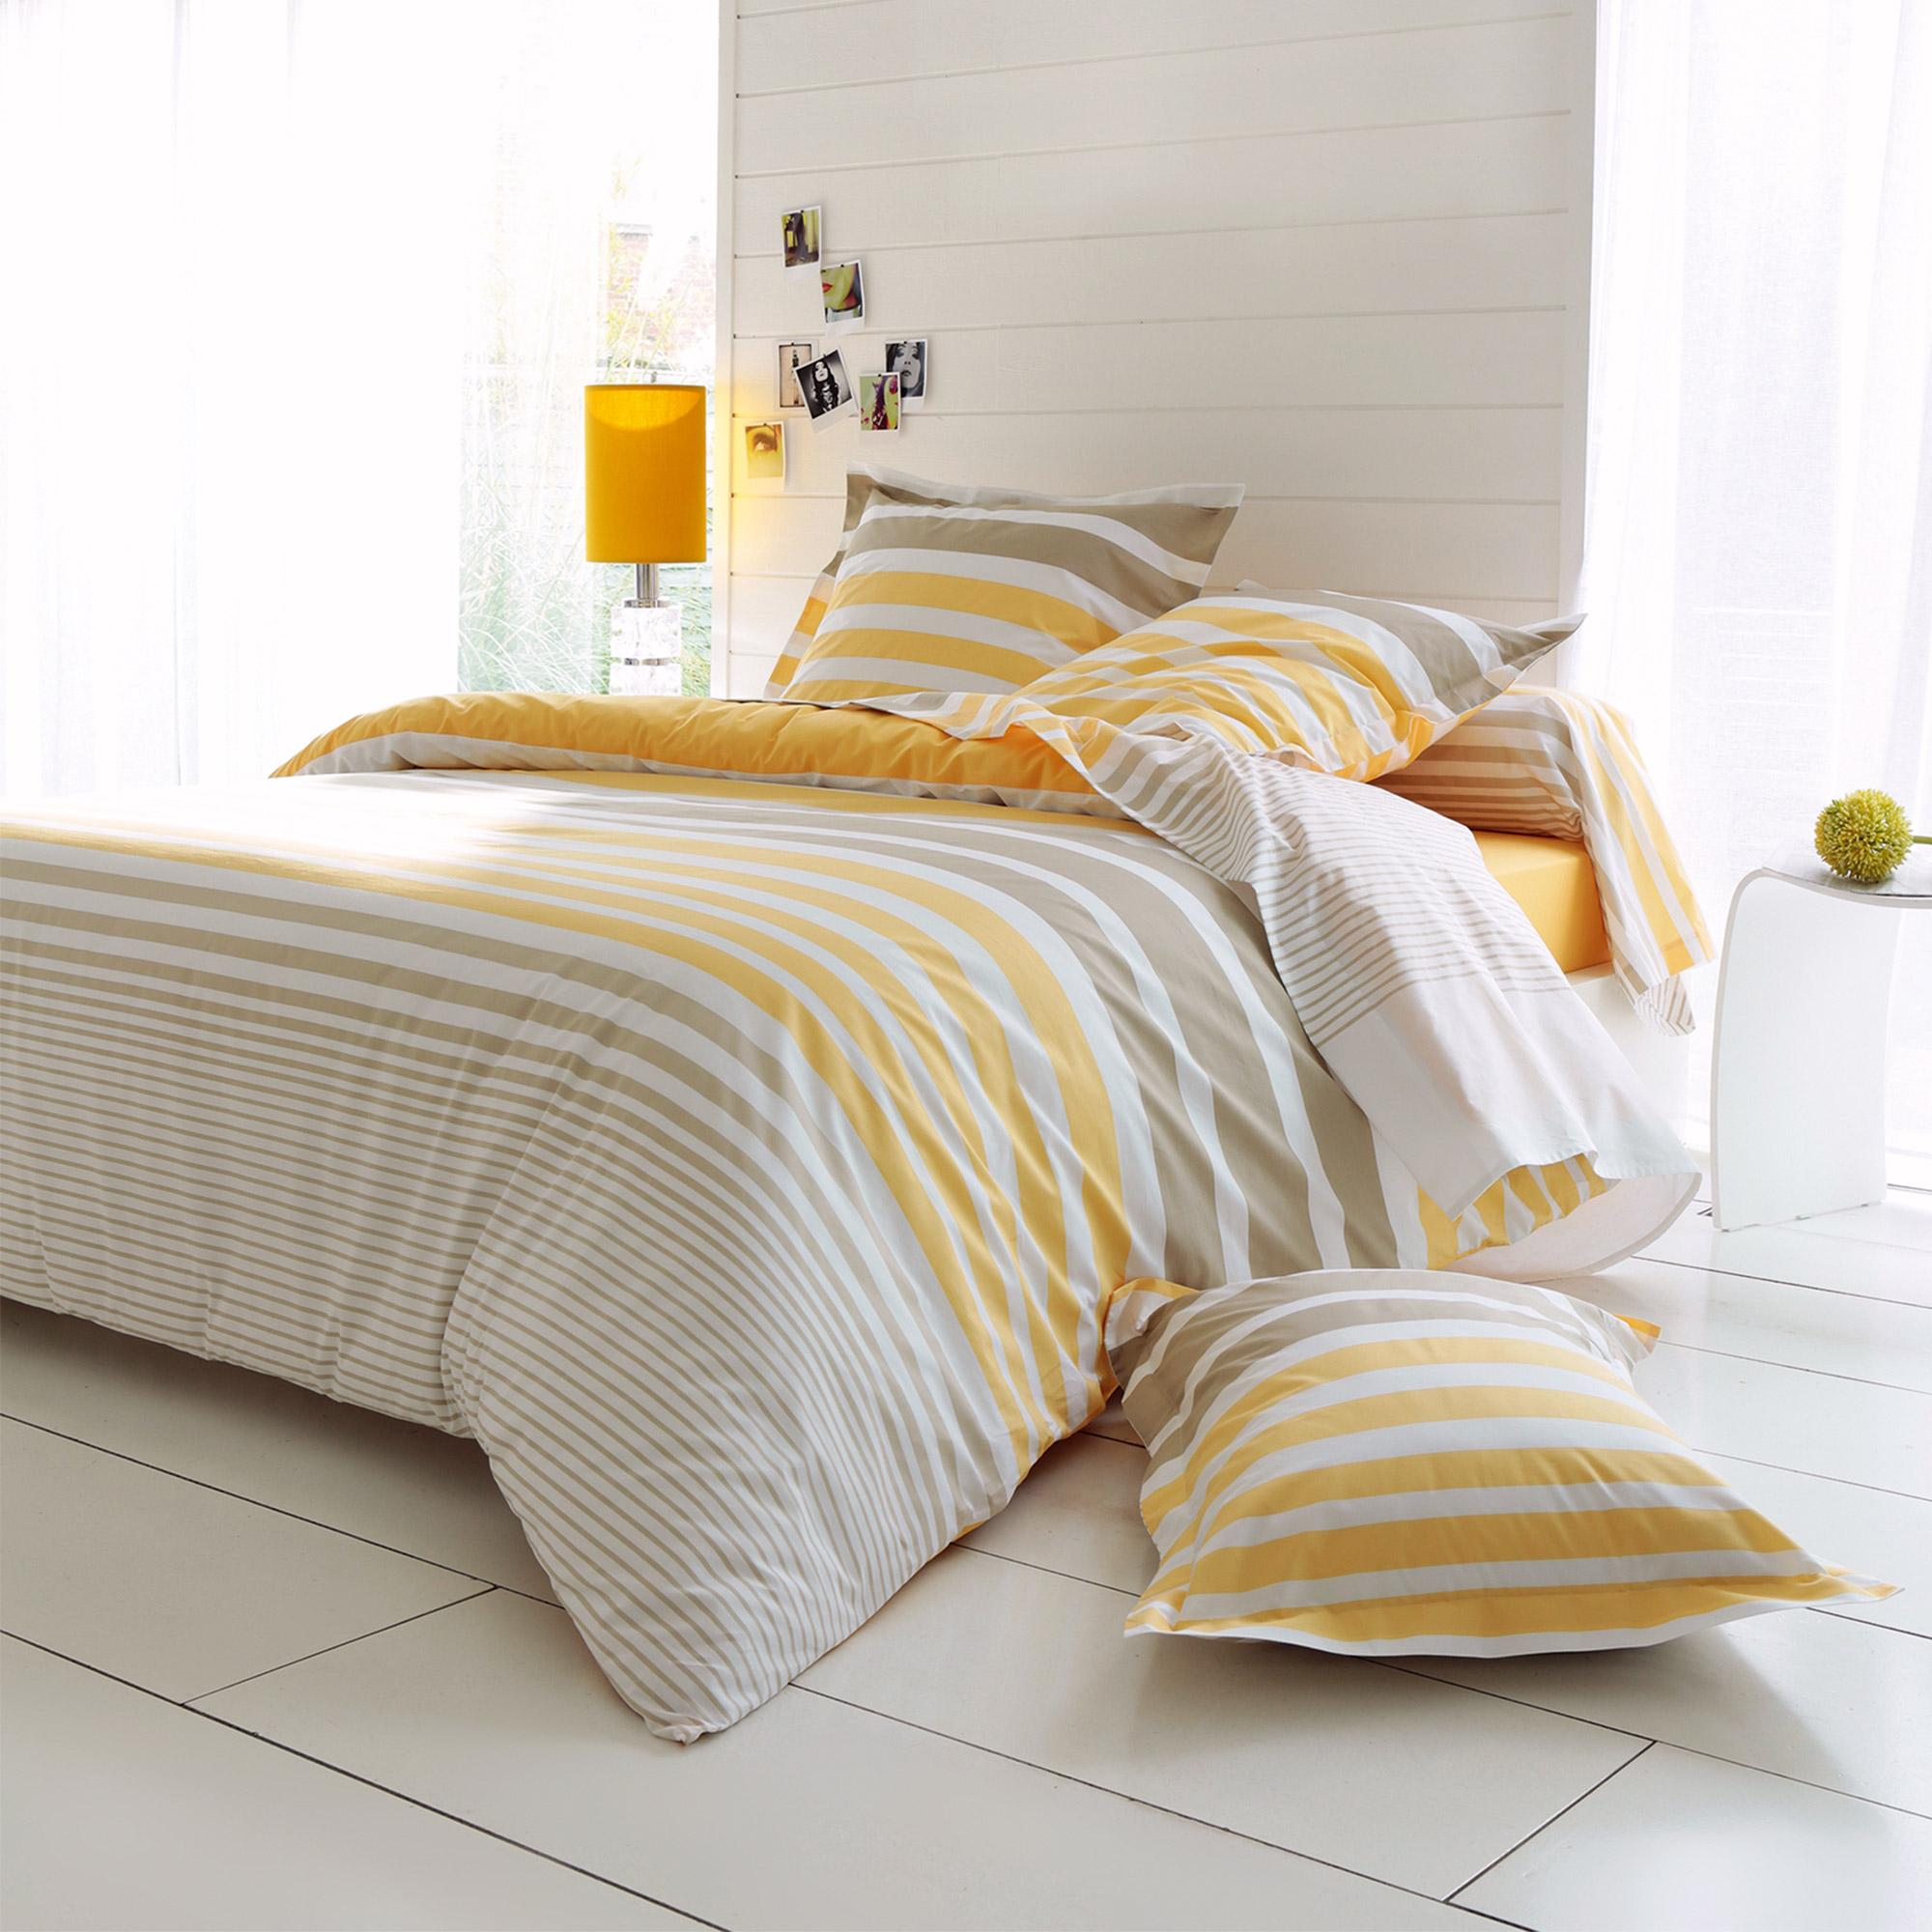 housse de couette 200x200 cm percale pur coton stripe narcisse jaune linnea linge de maison et. Black Bedroom Furniture Sets. Home Design Ideas